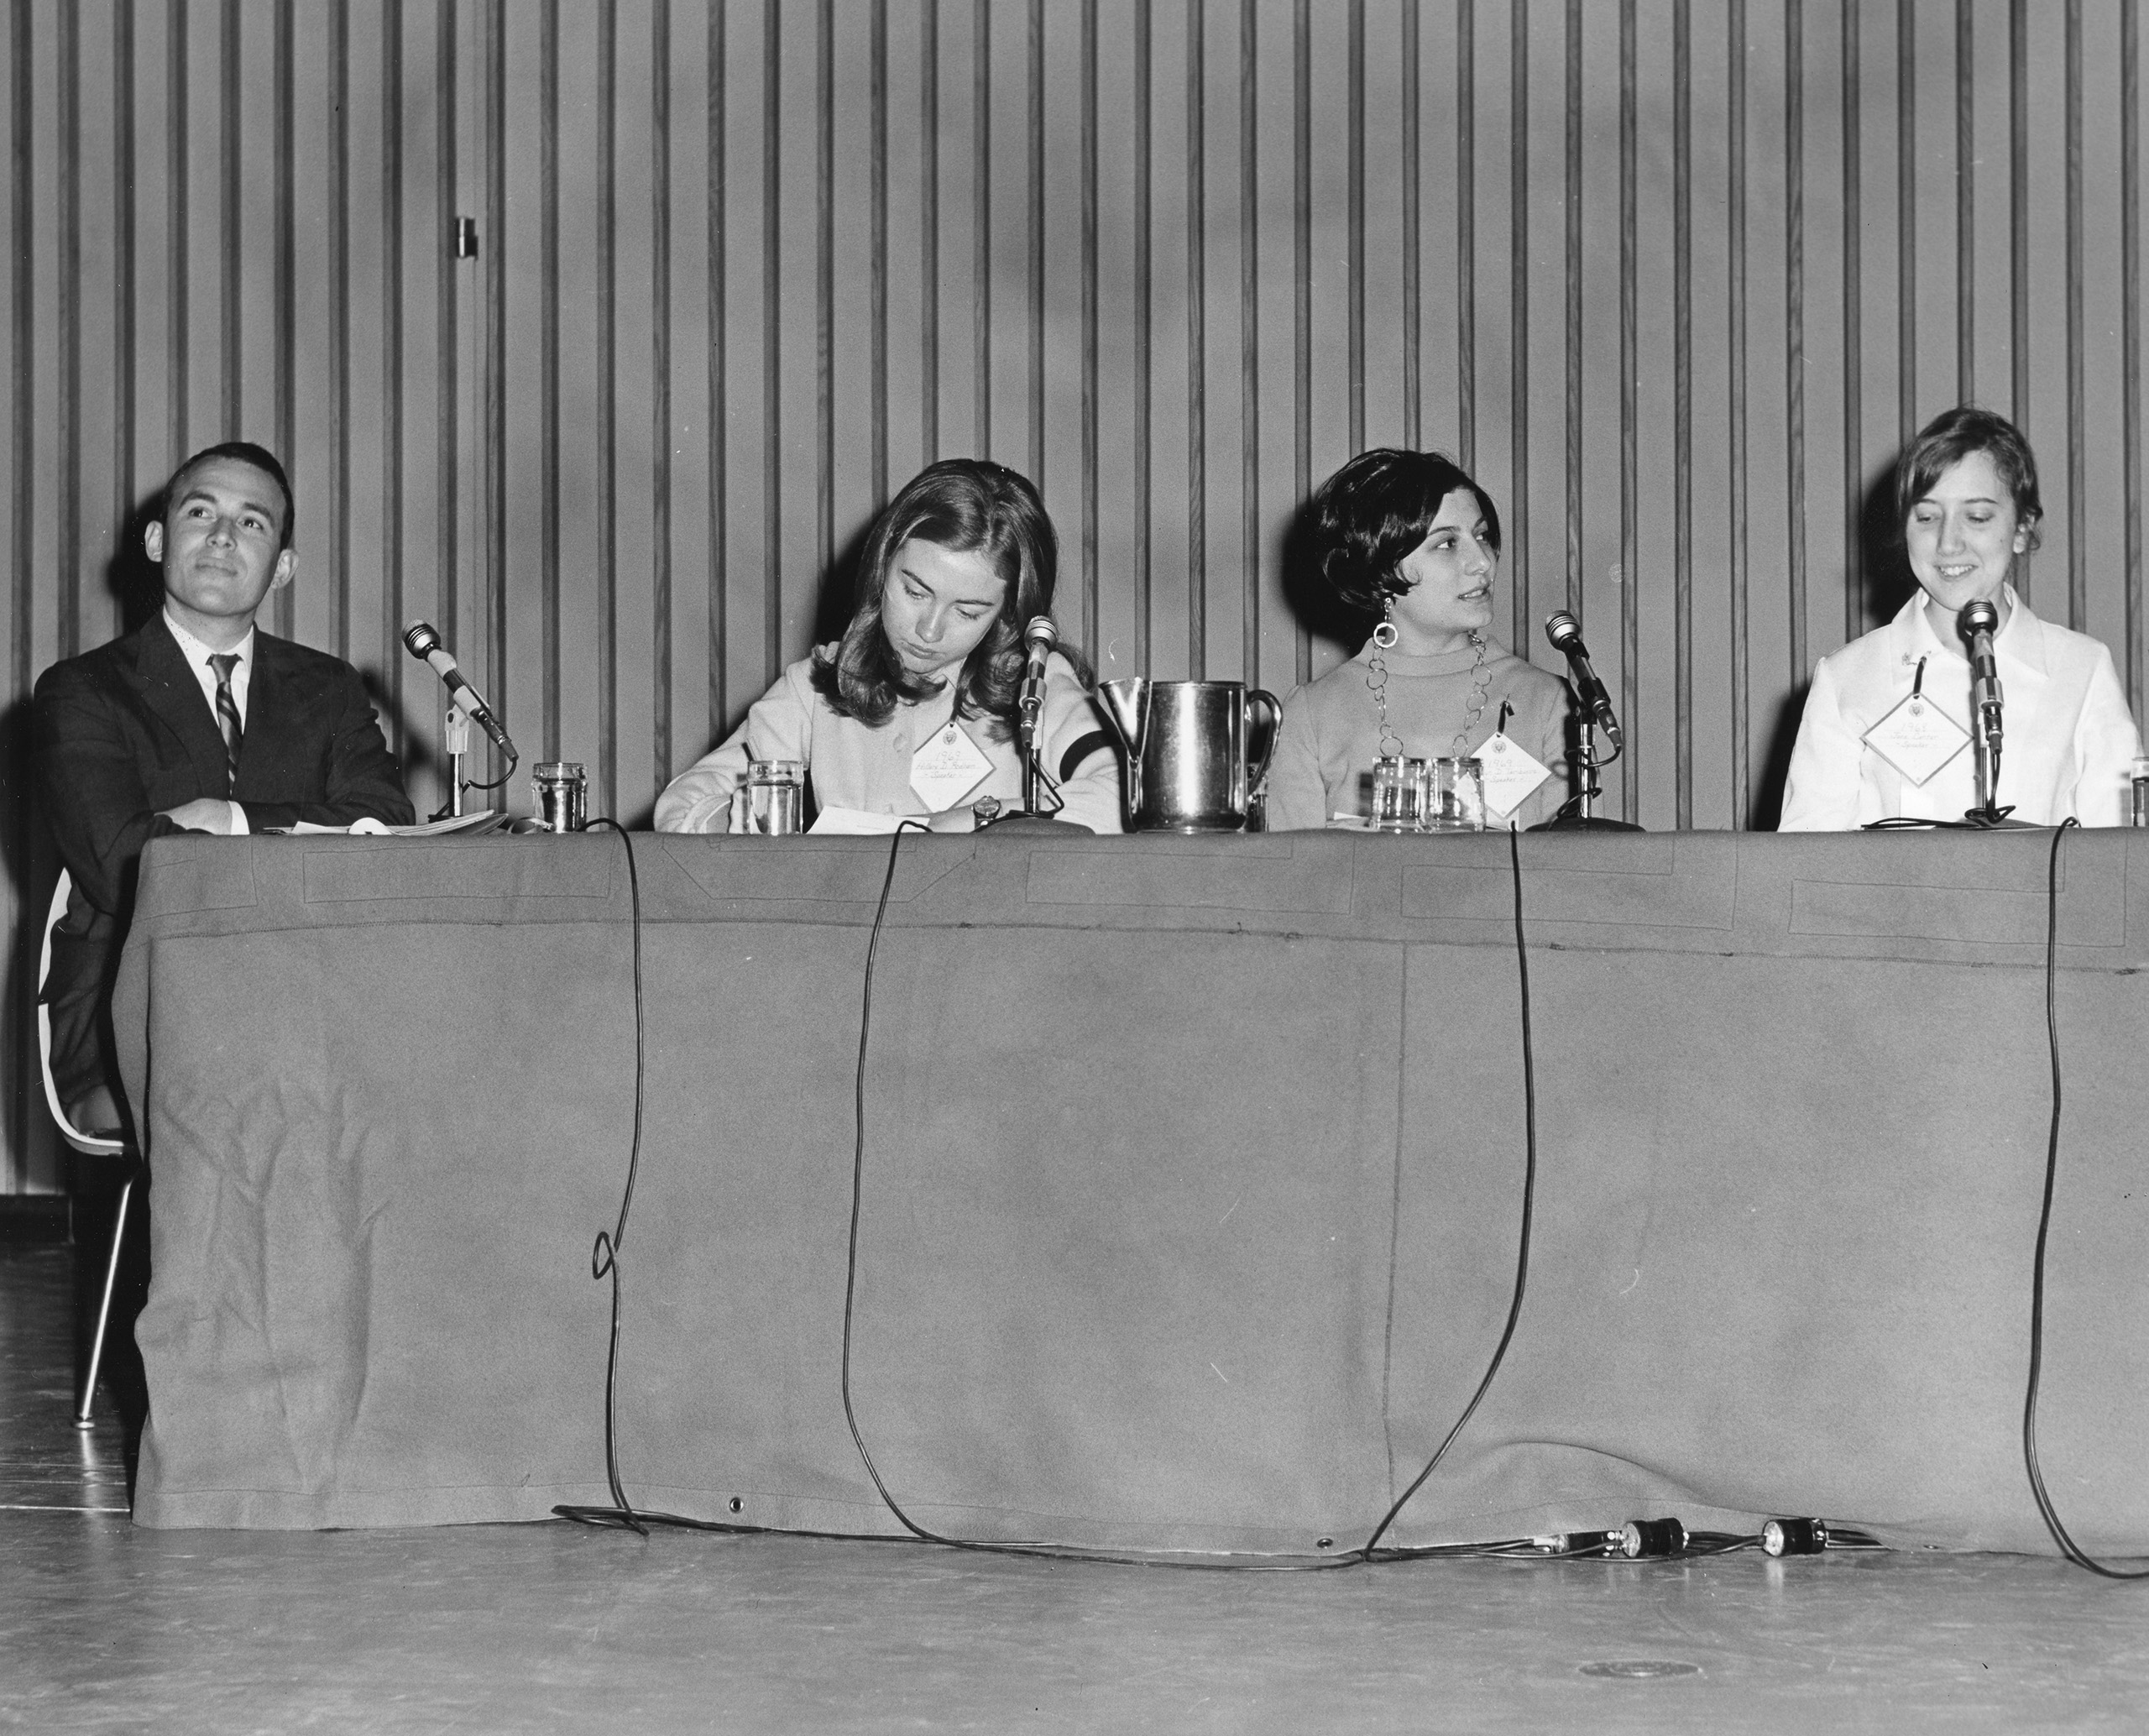 Hillary joins students and a faculty member at the Wellesley College Alumnae Council Student Panel, 1968.